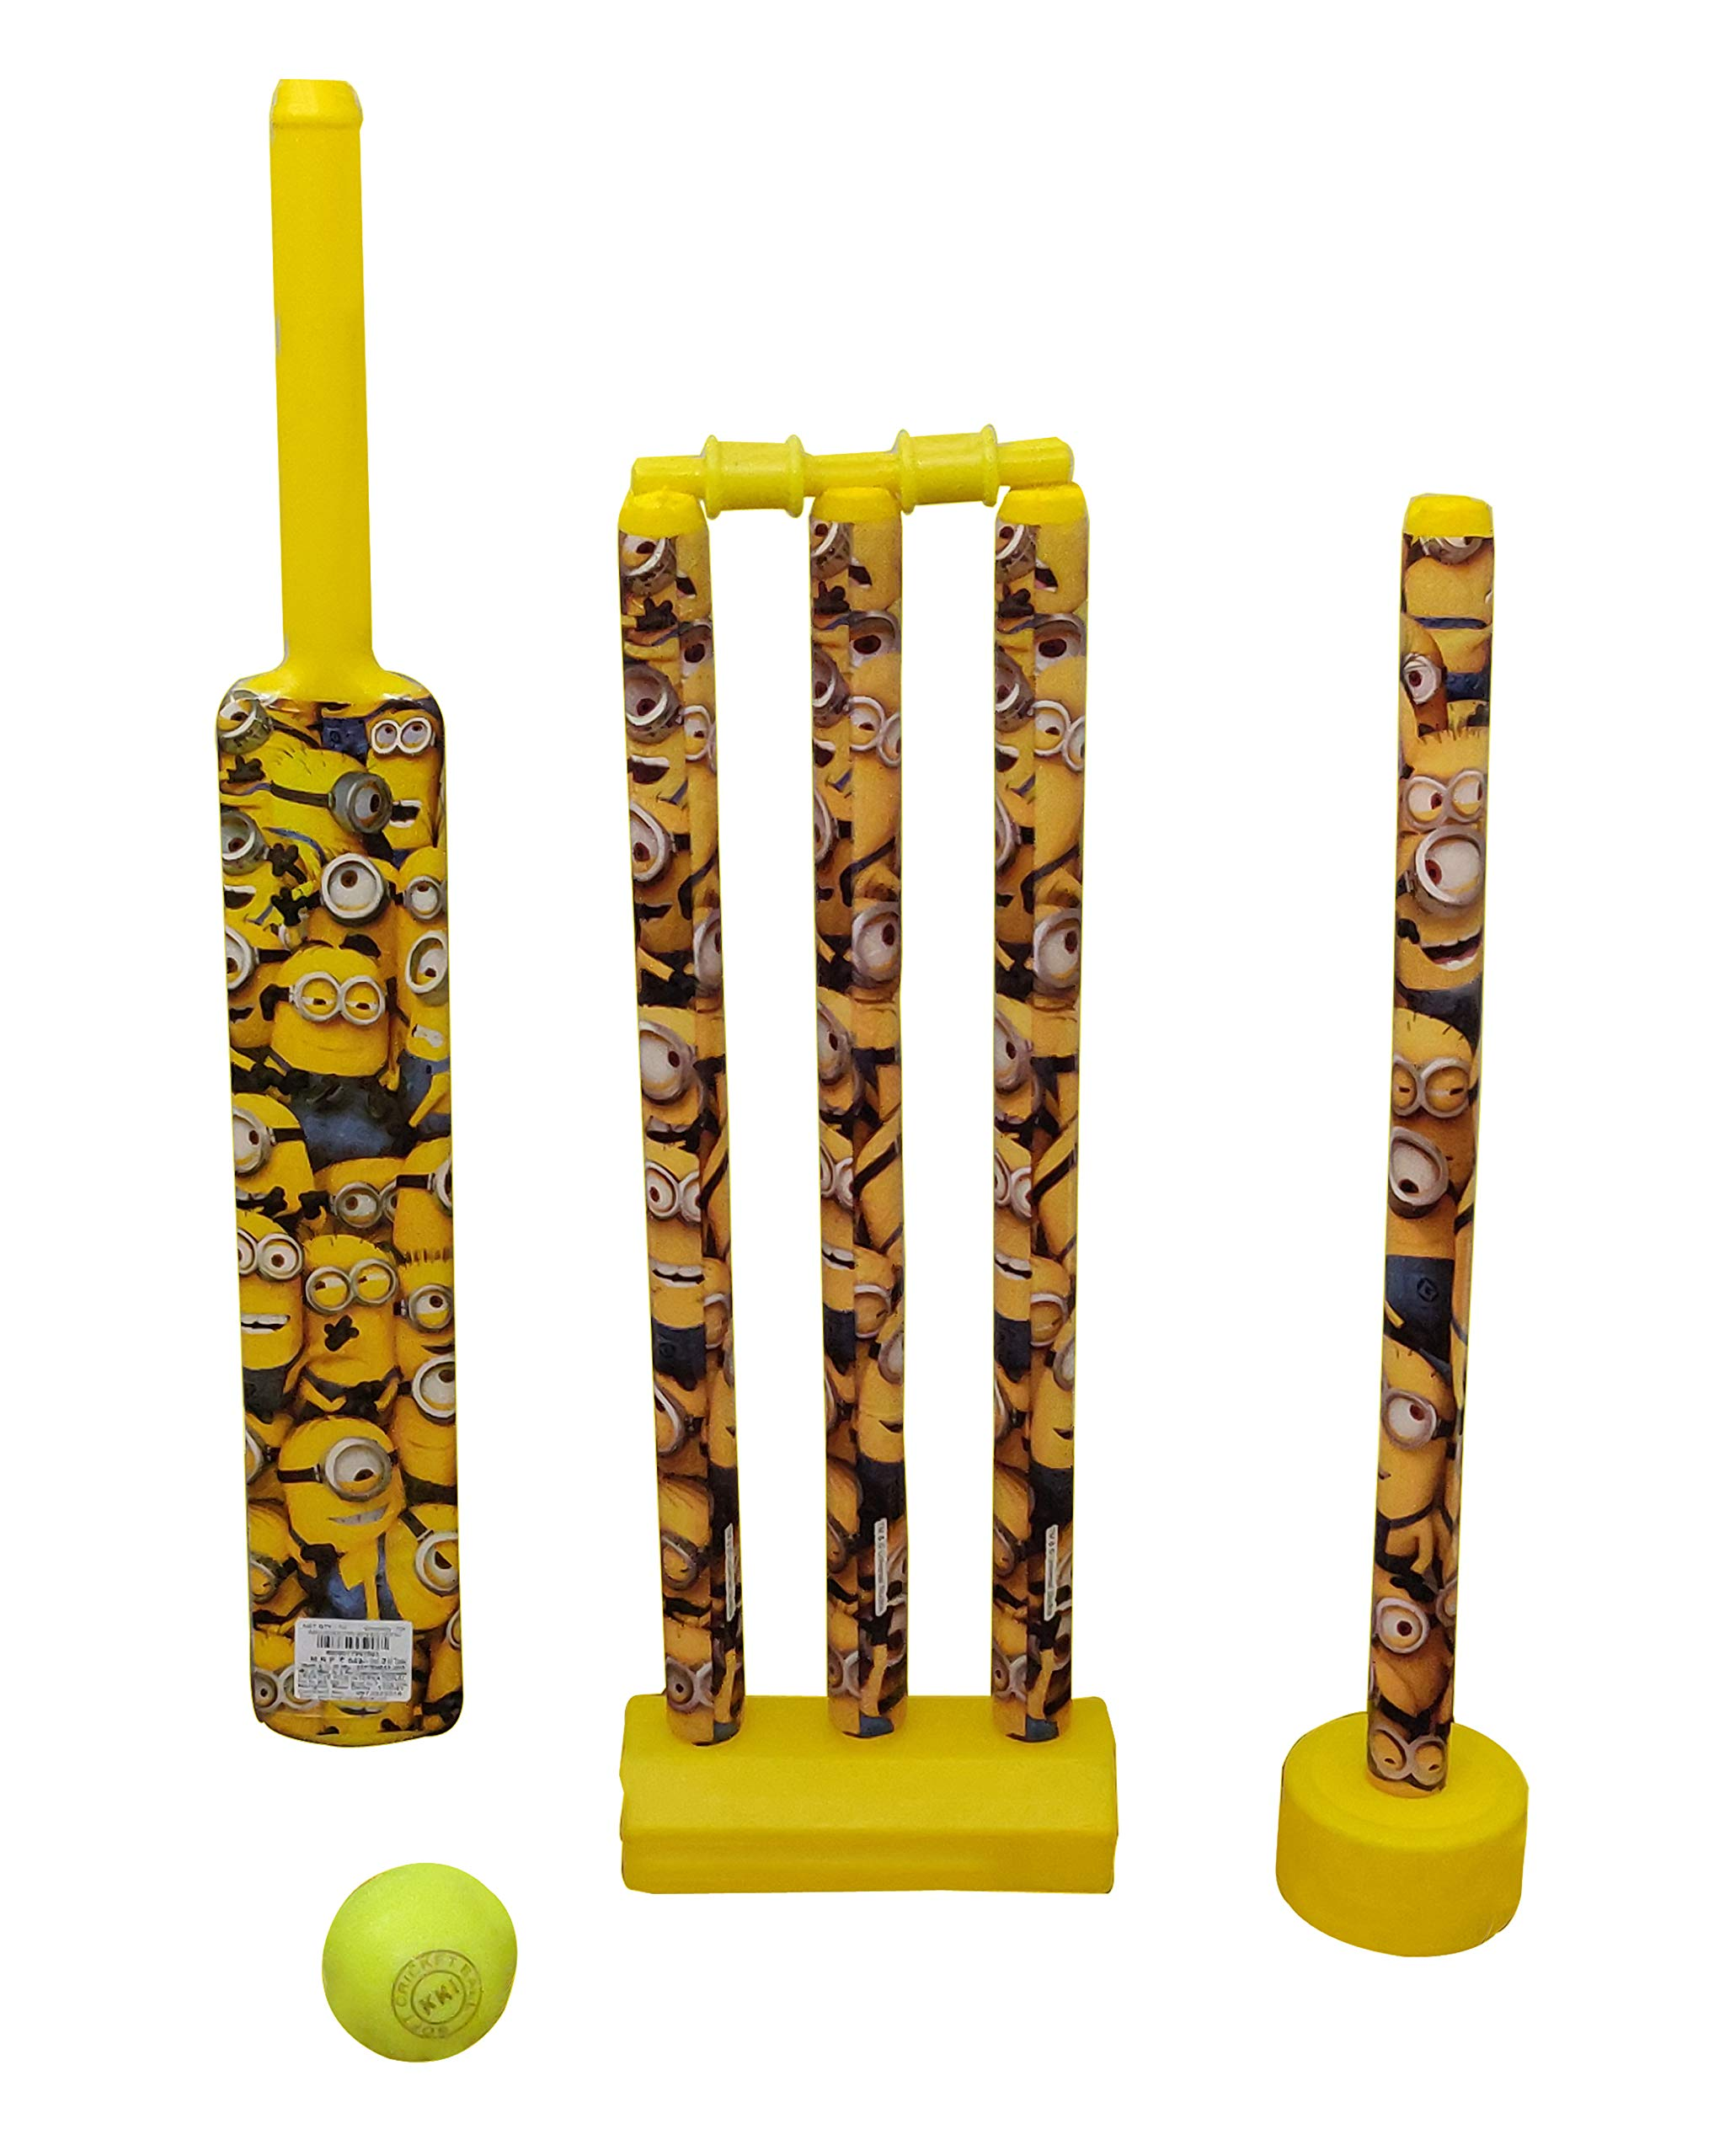 Amazon price history for kreative Kids Minion-Plastic Cricket Set with 4 Wicket , 2 Base , Bail and Soft Cricket Ball (BAT NO-4) Outdoor and Indoor